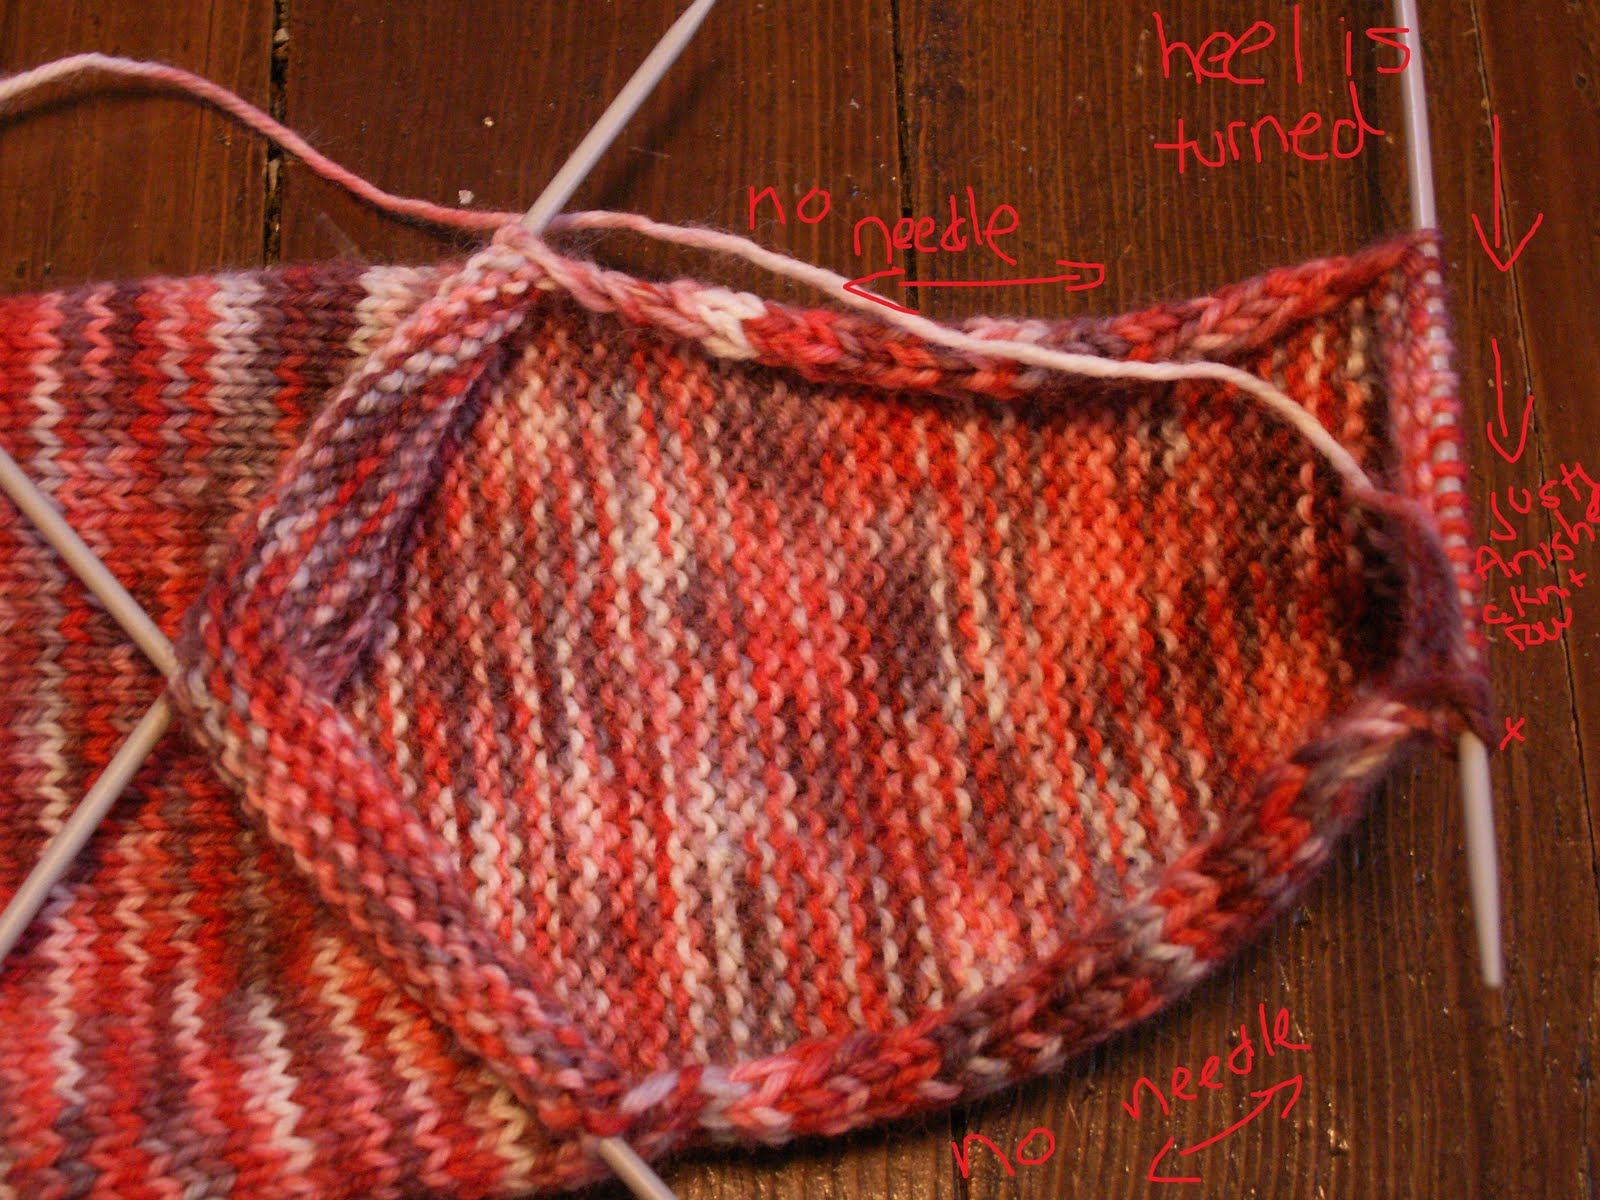 Picking Up Stitches In Knitting Socks : Mistress of Knitting: Knitting Top-Down Socks, Part 3 - Picking up stitches f...